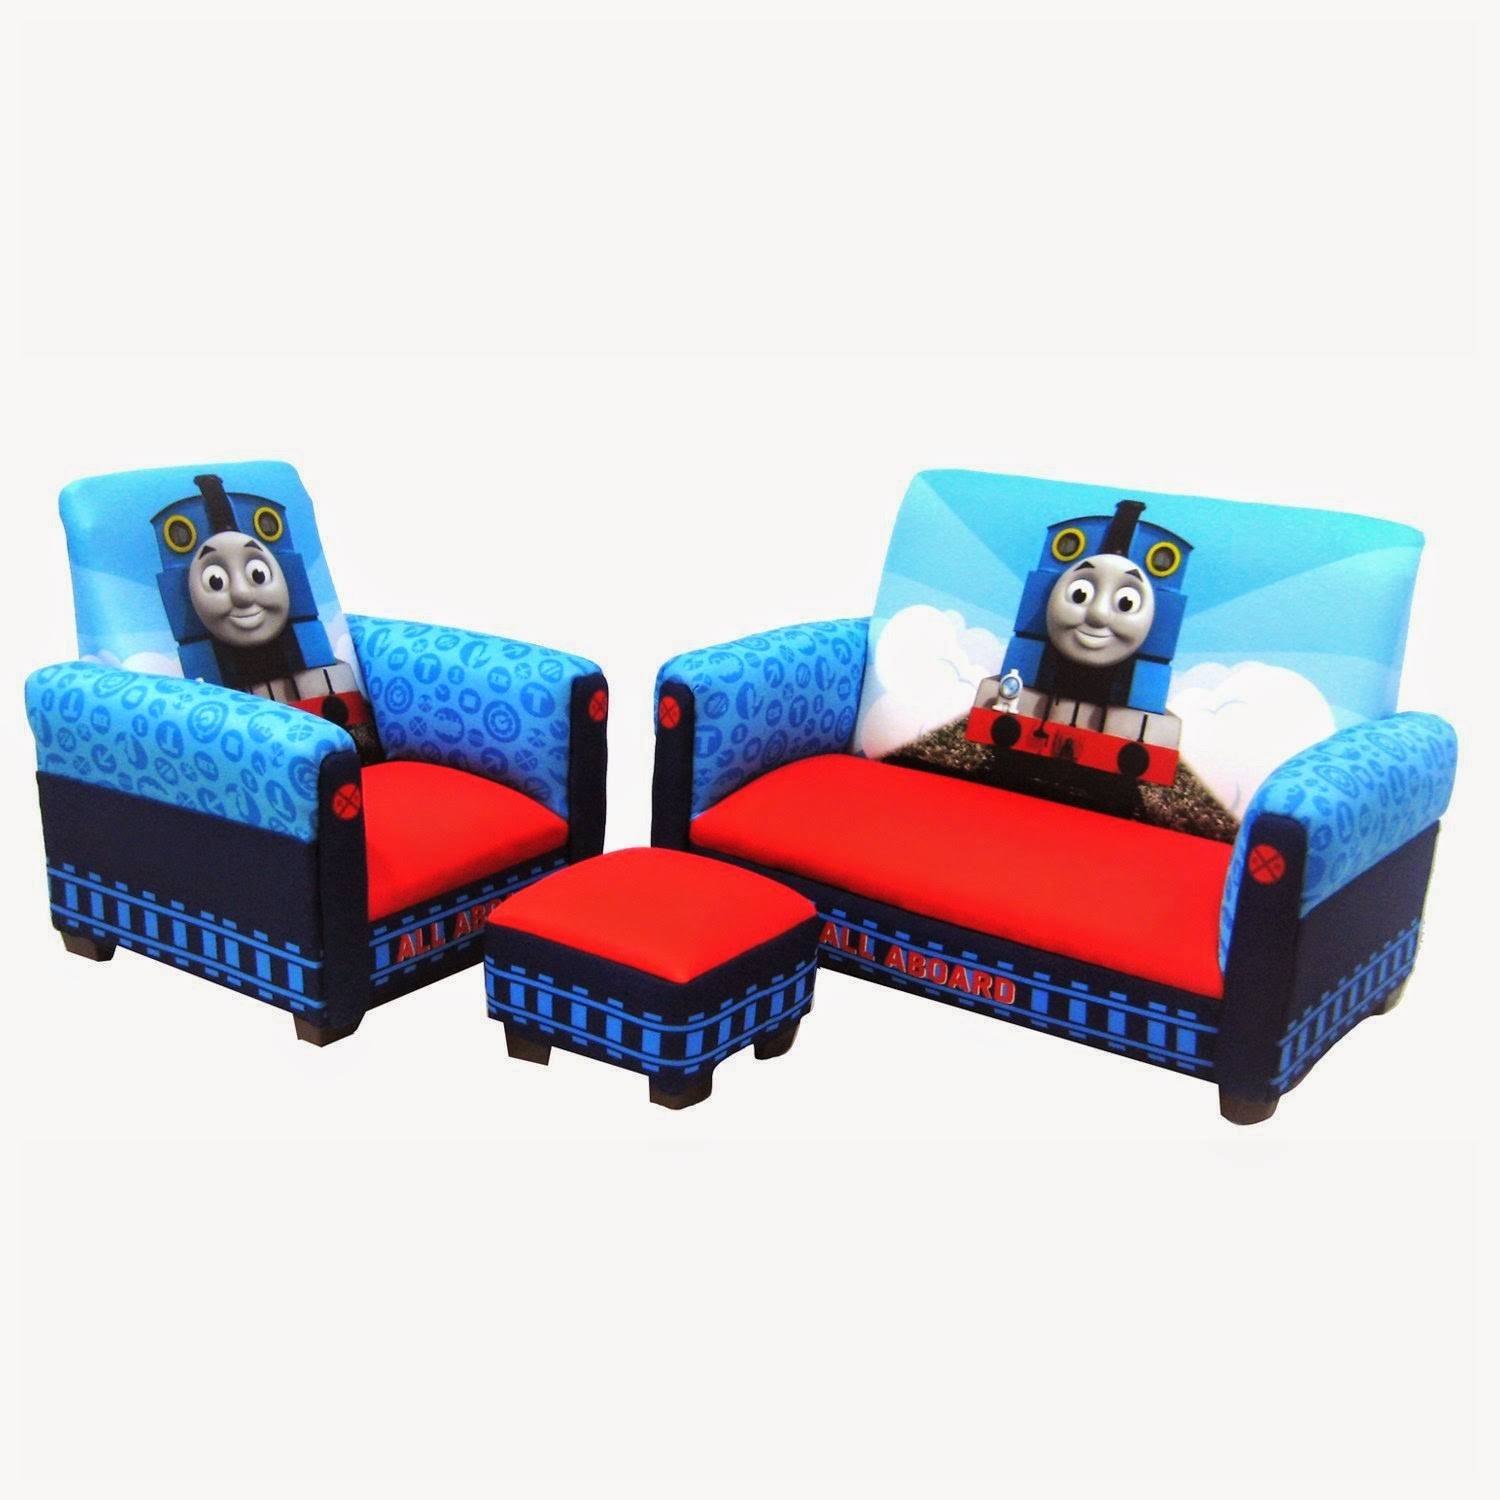 couch beds: couch beds for kids